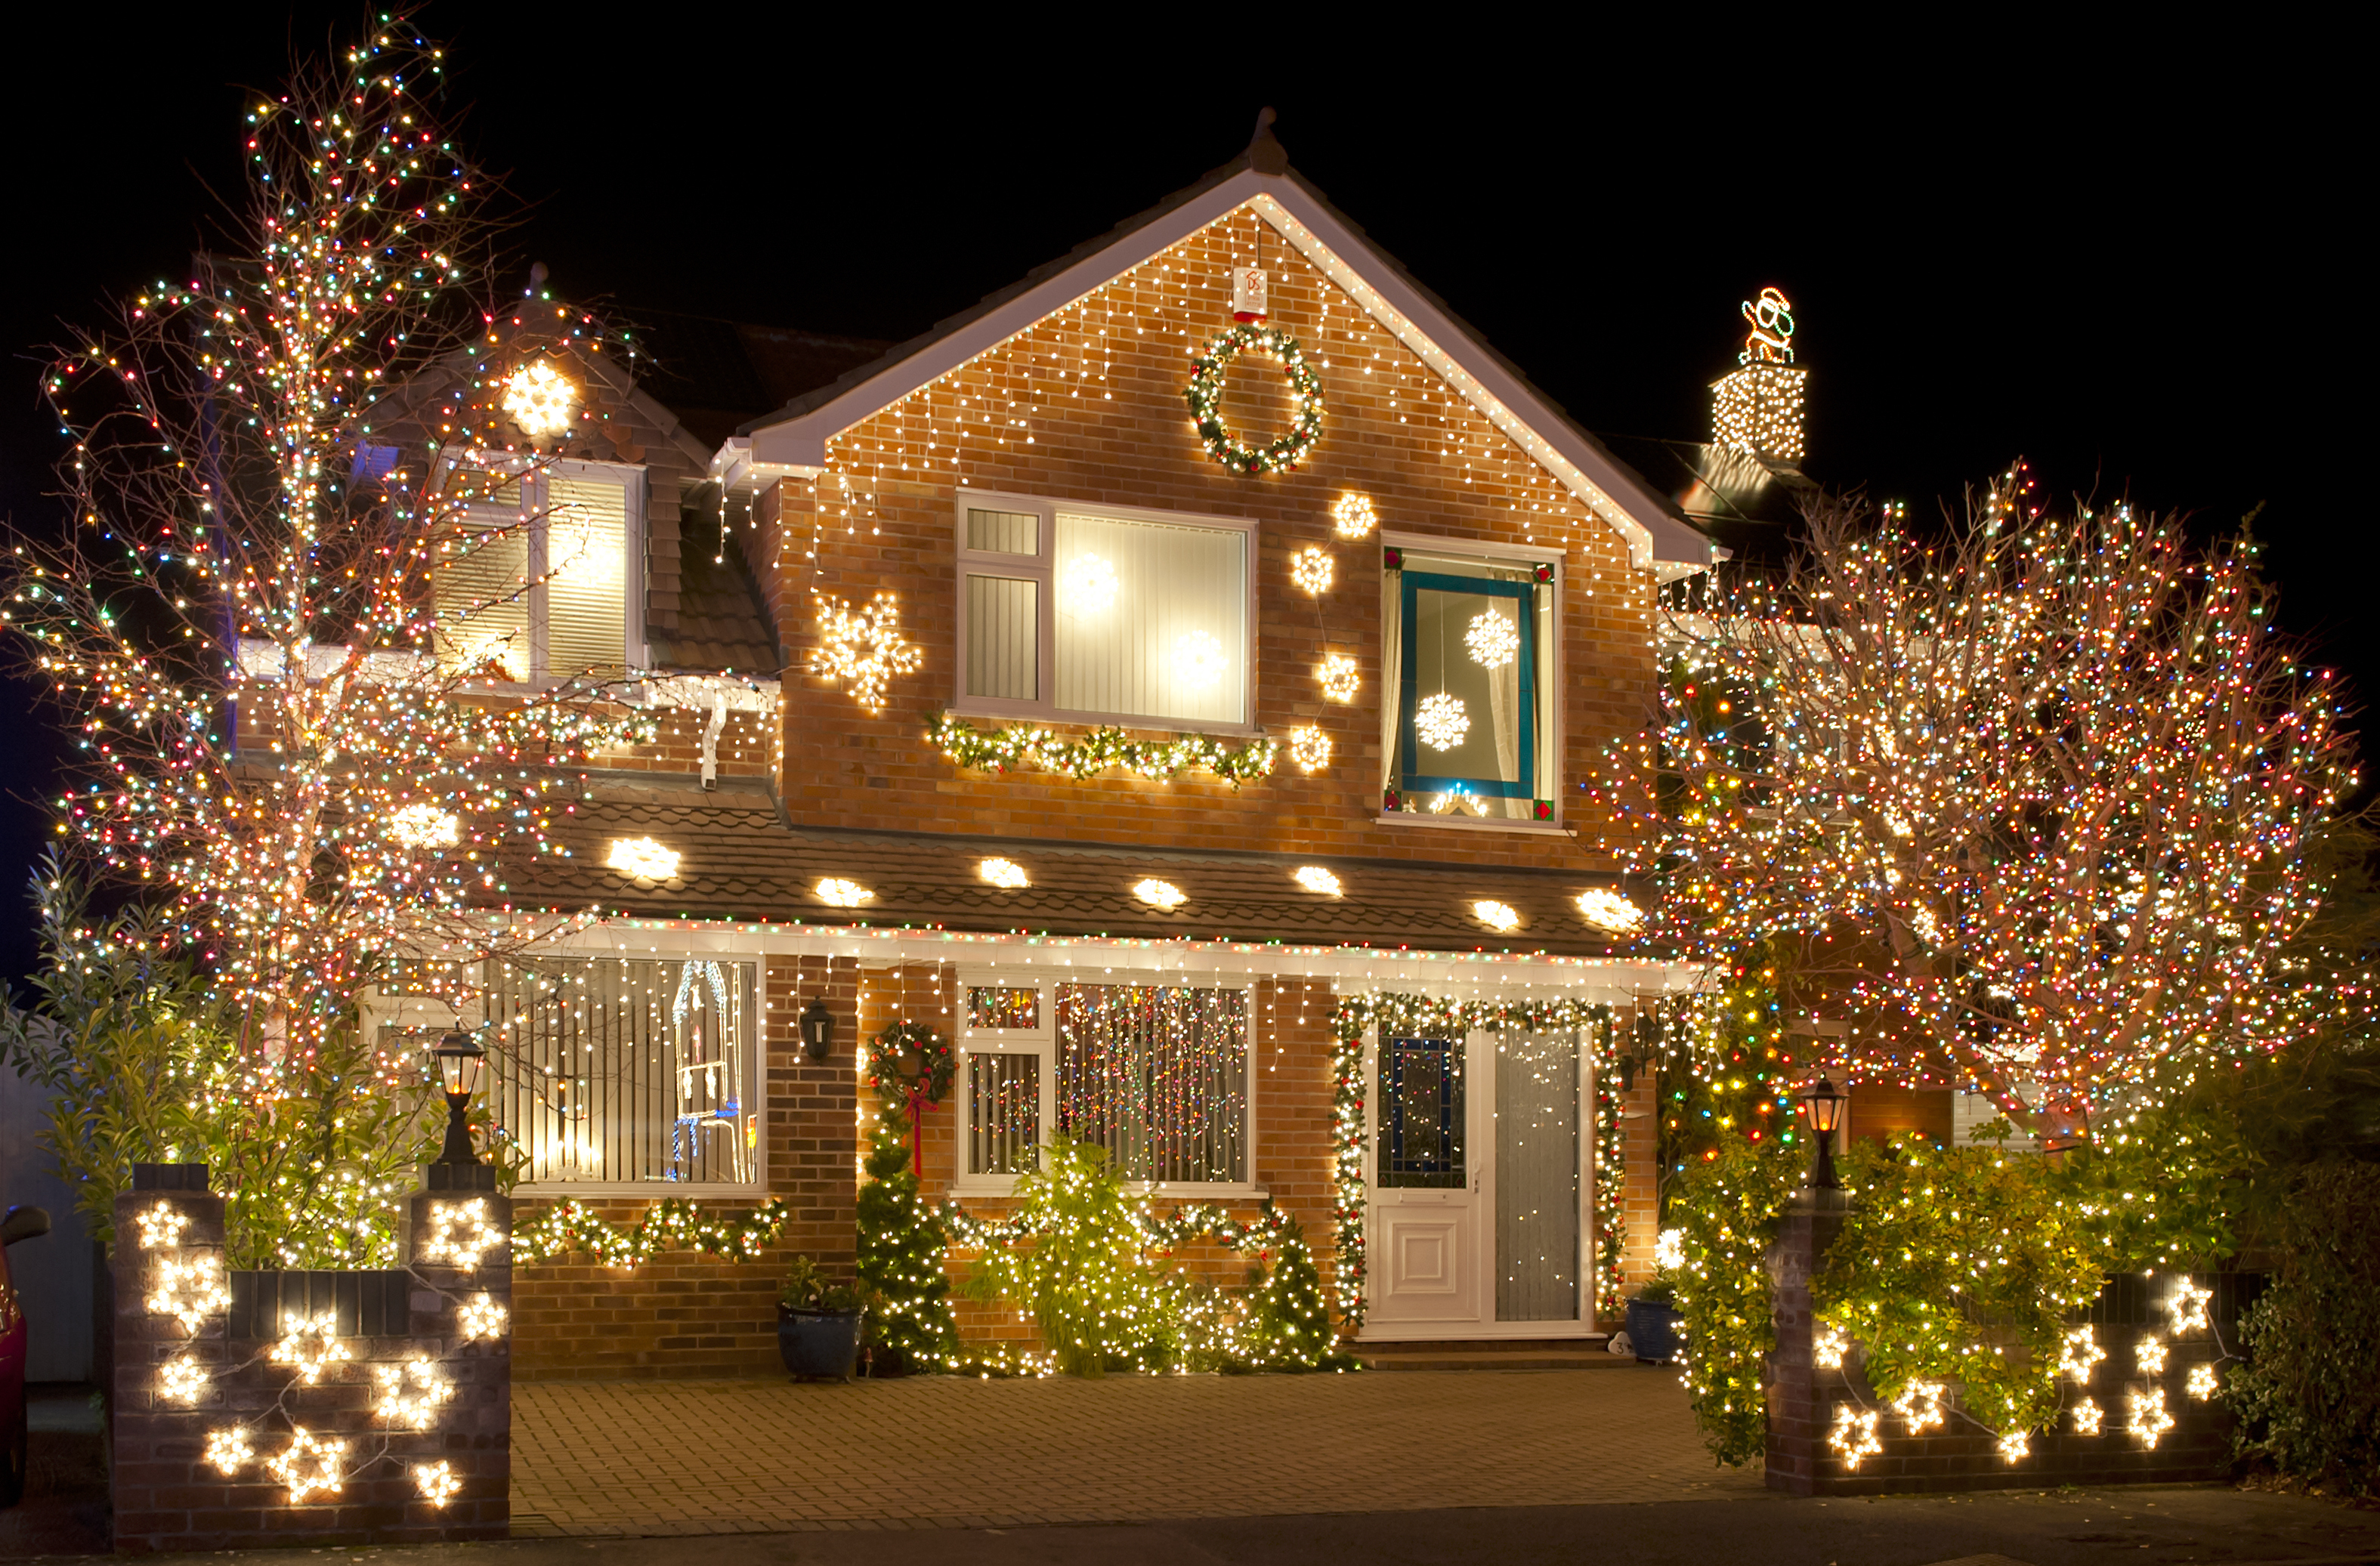 How to Hang Your Lights with Care